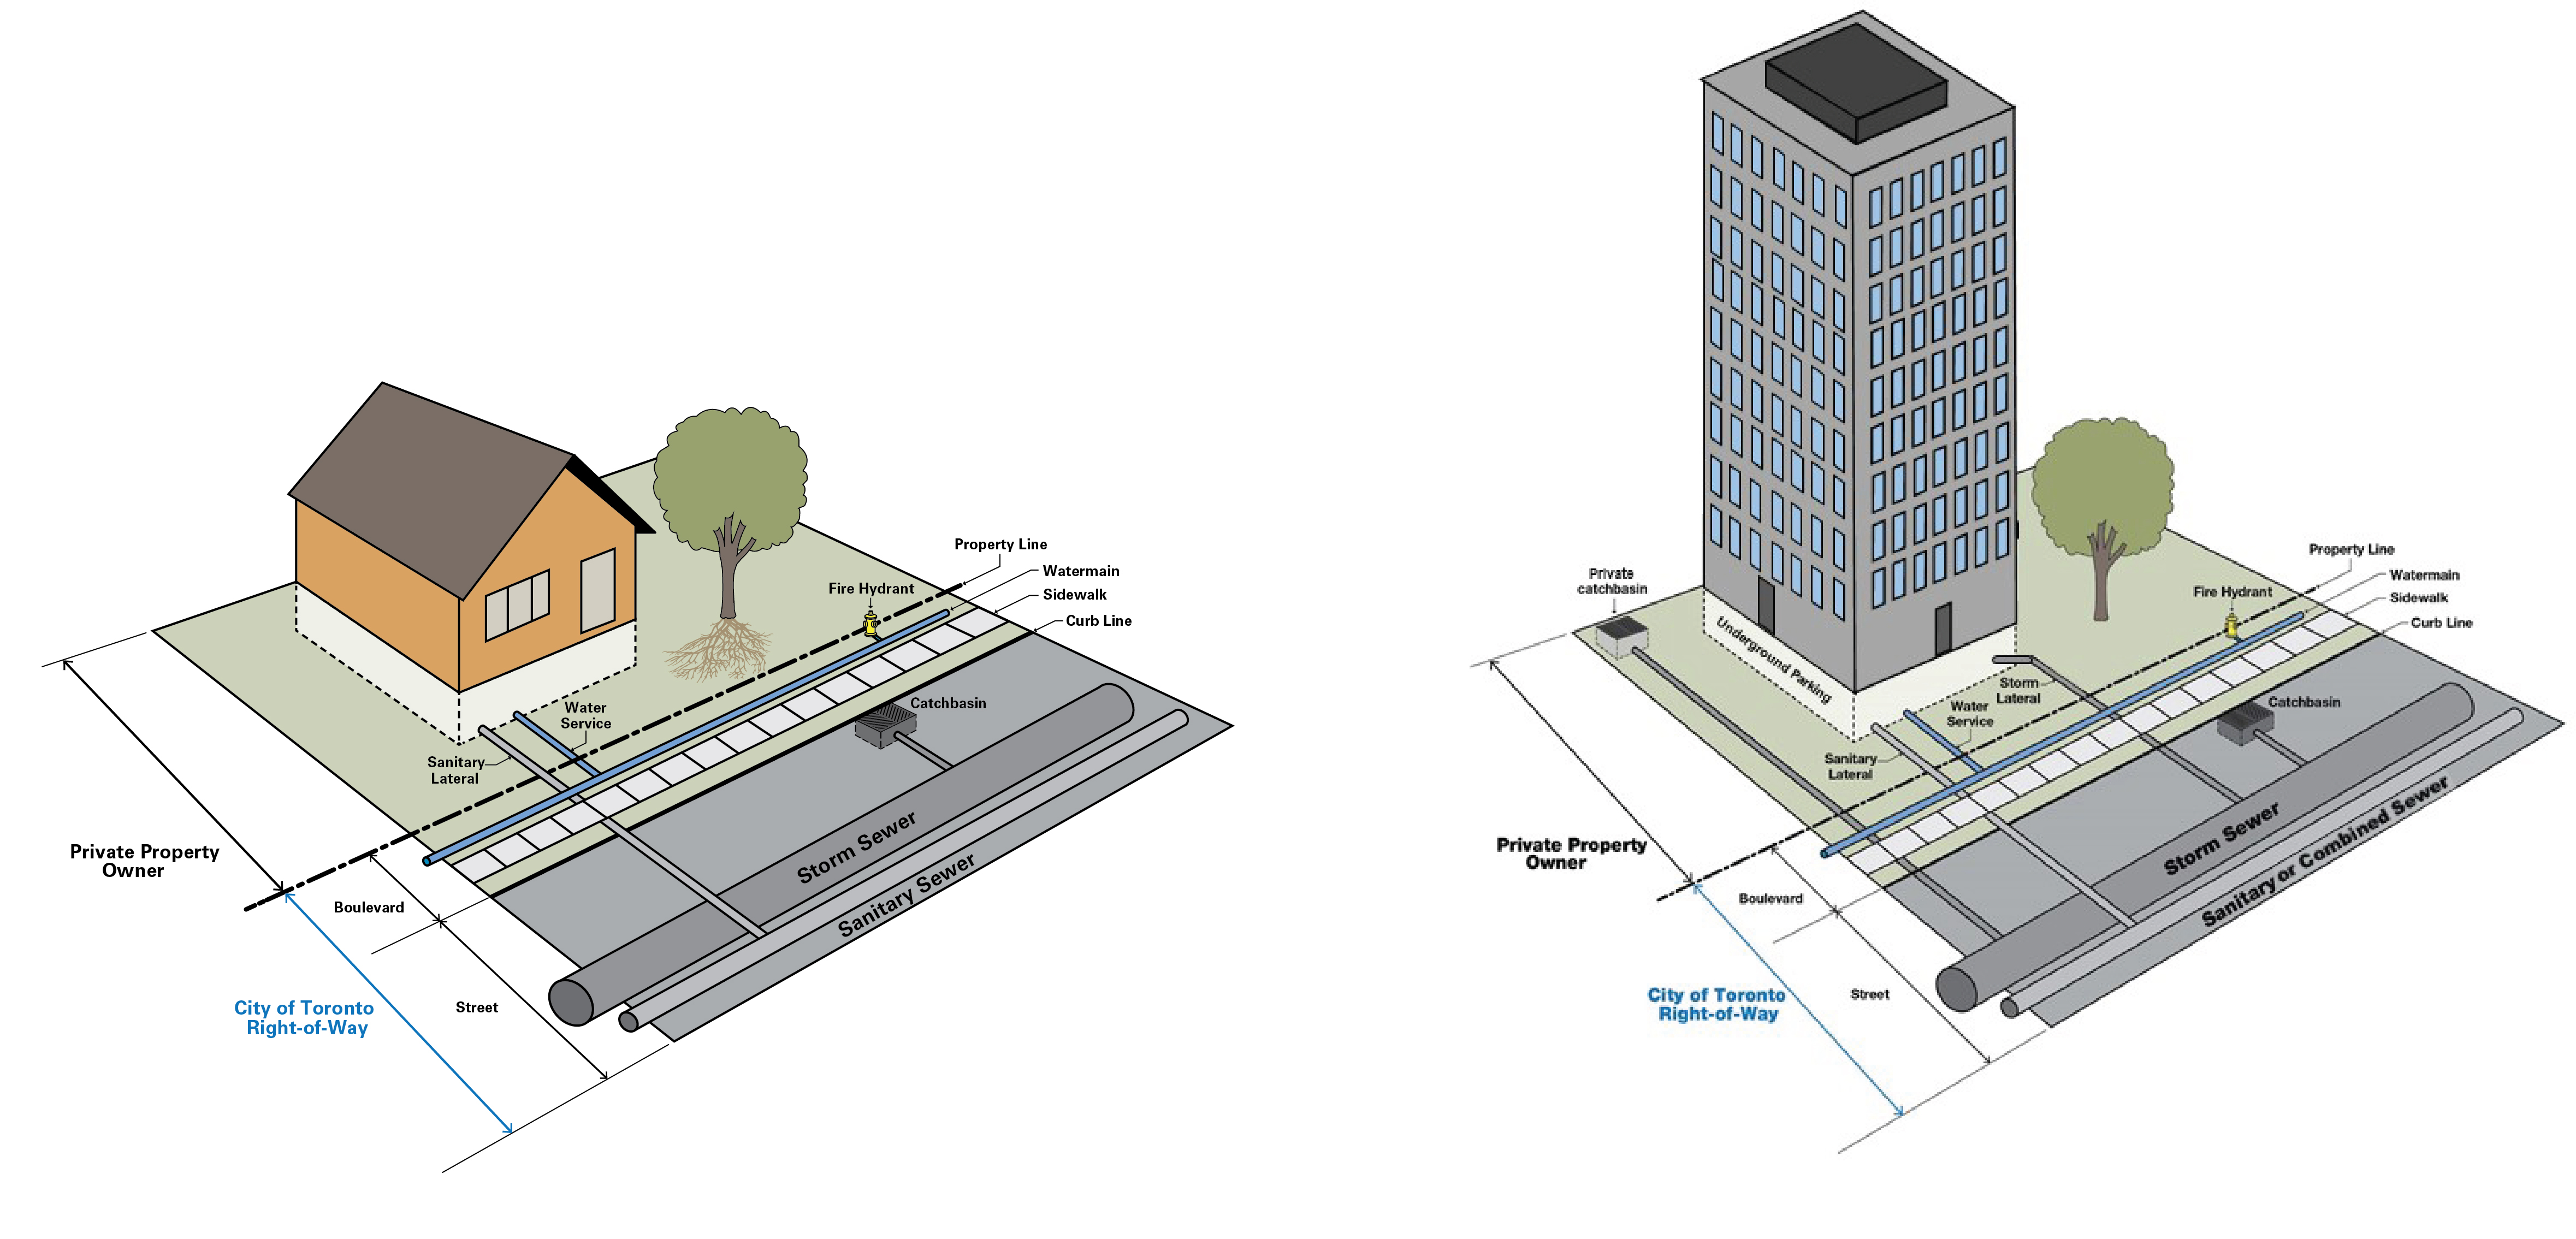 Diagram of responsibilities for property owners vs. the City